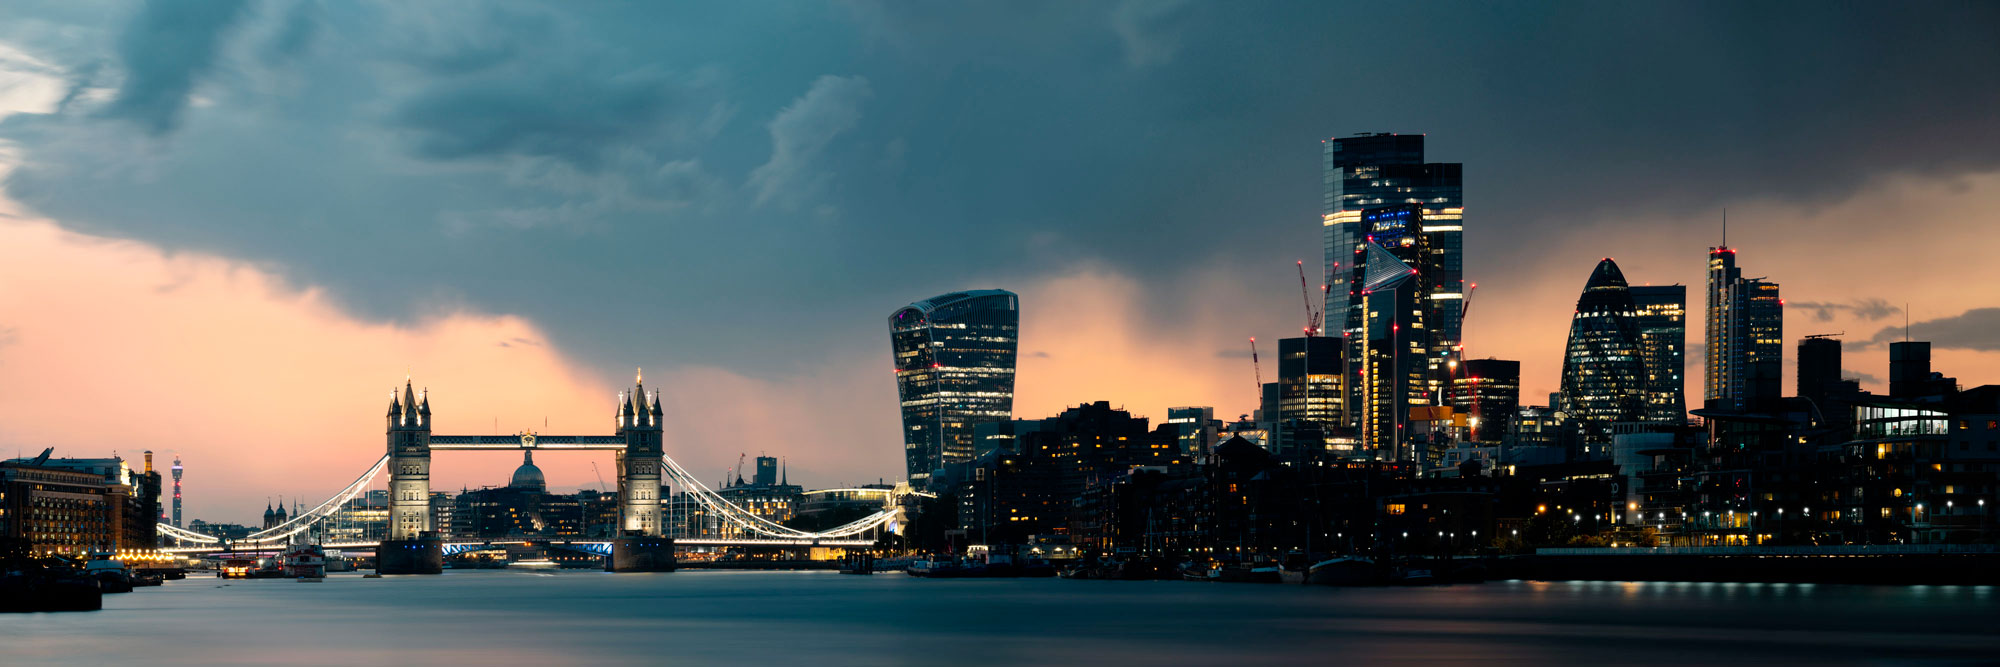 summer storm passing over the London skyline at sunset